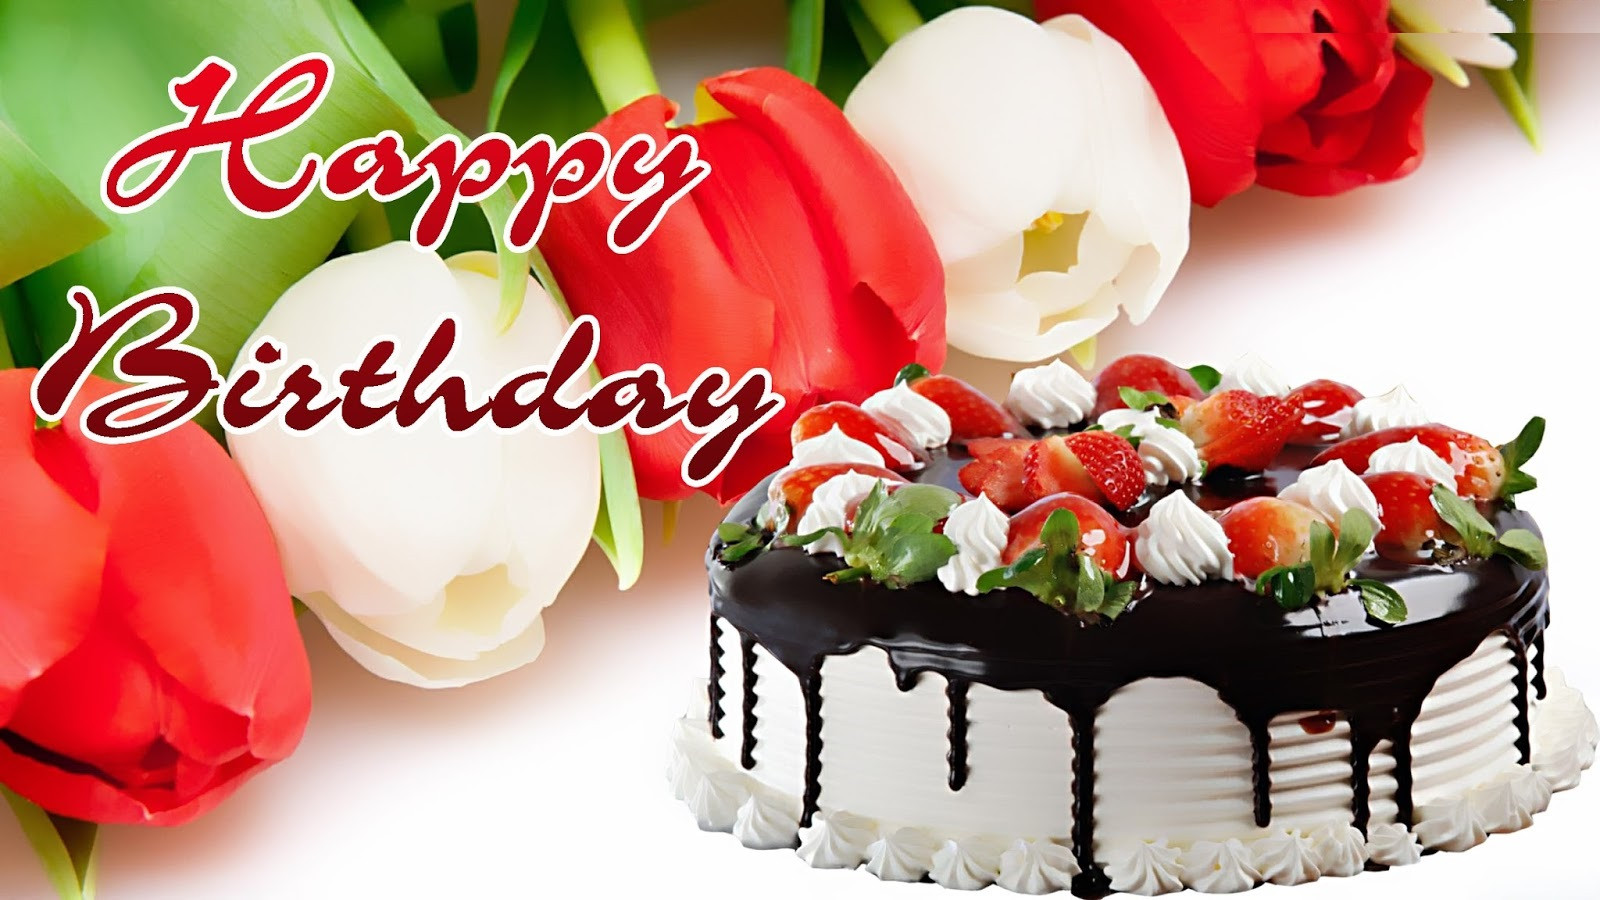 happy birthday wish picture download ; lovely-happy-journey-wishes-images-free-with-quotes-sms-messages-of-happy-birthday-wishes-image-download